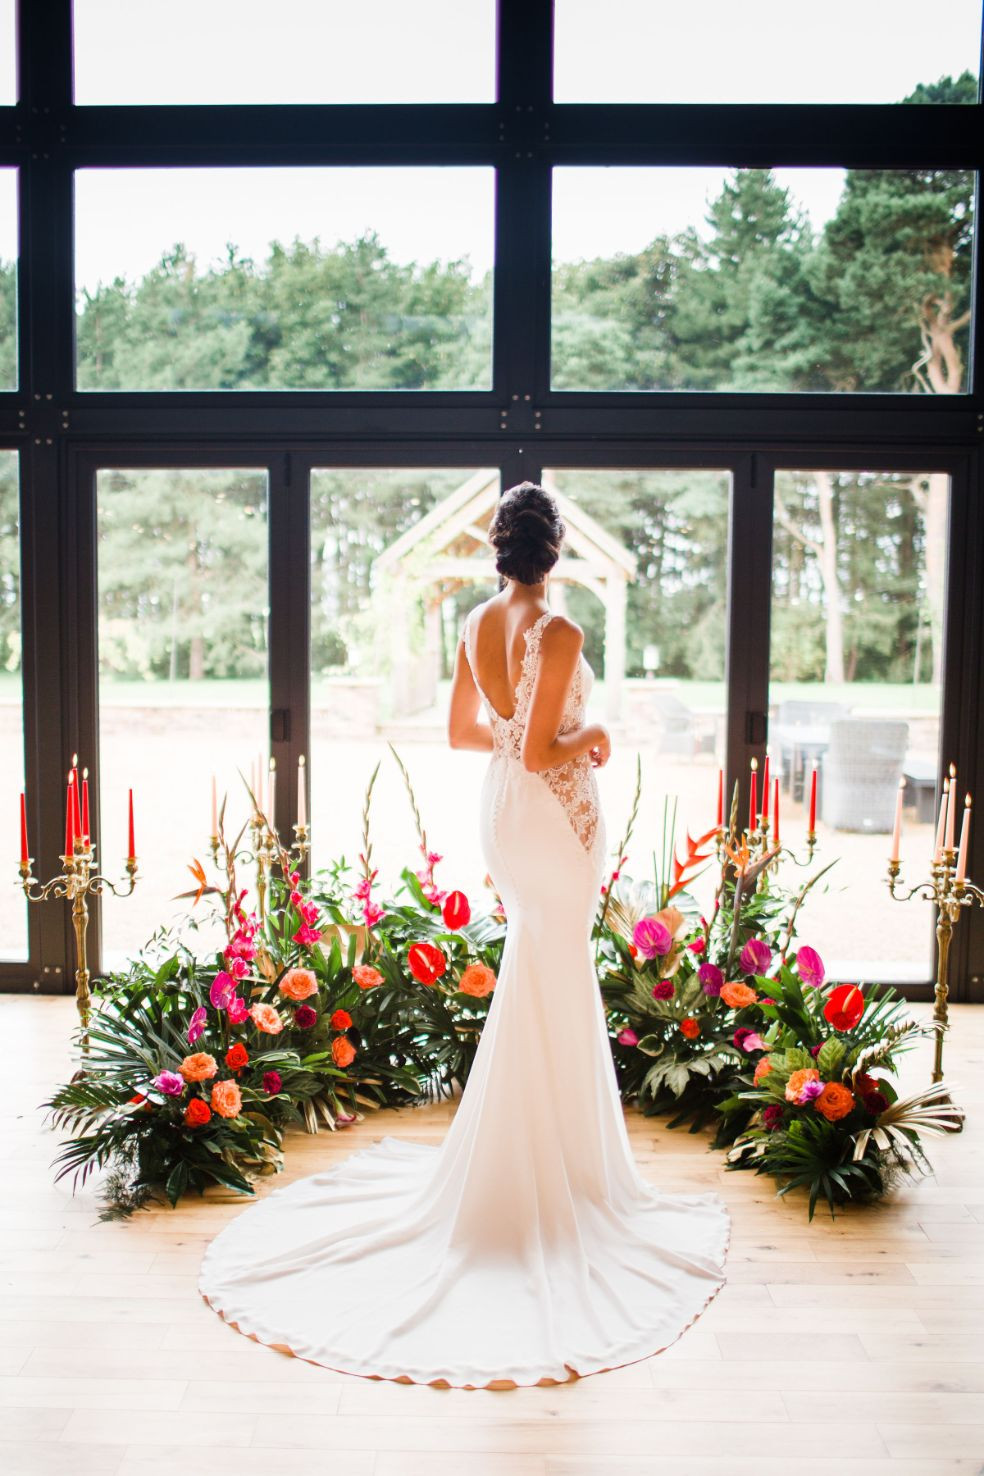 Bride wearig a fitted lace wedding dress with a tropical flower display